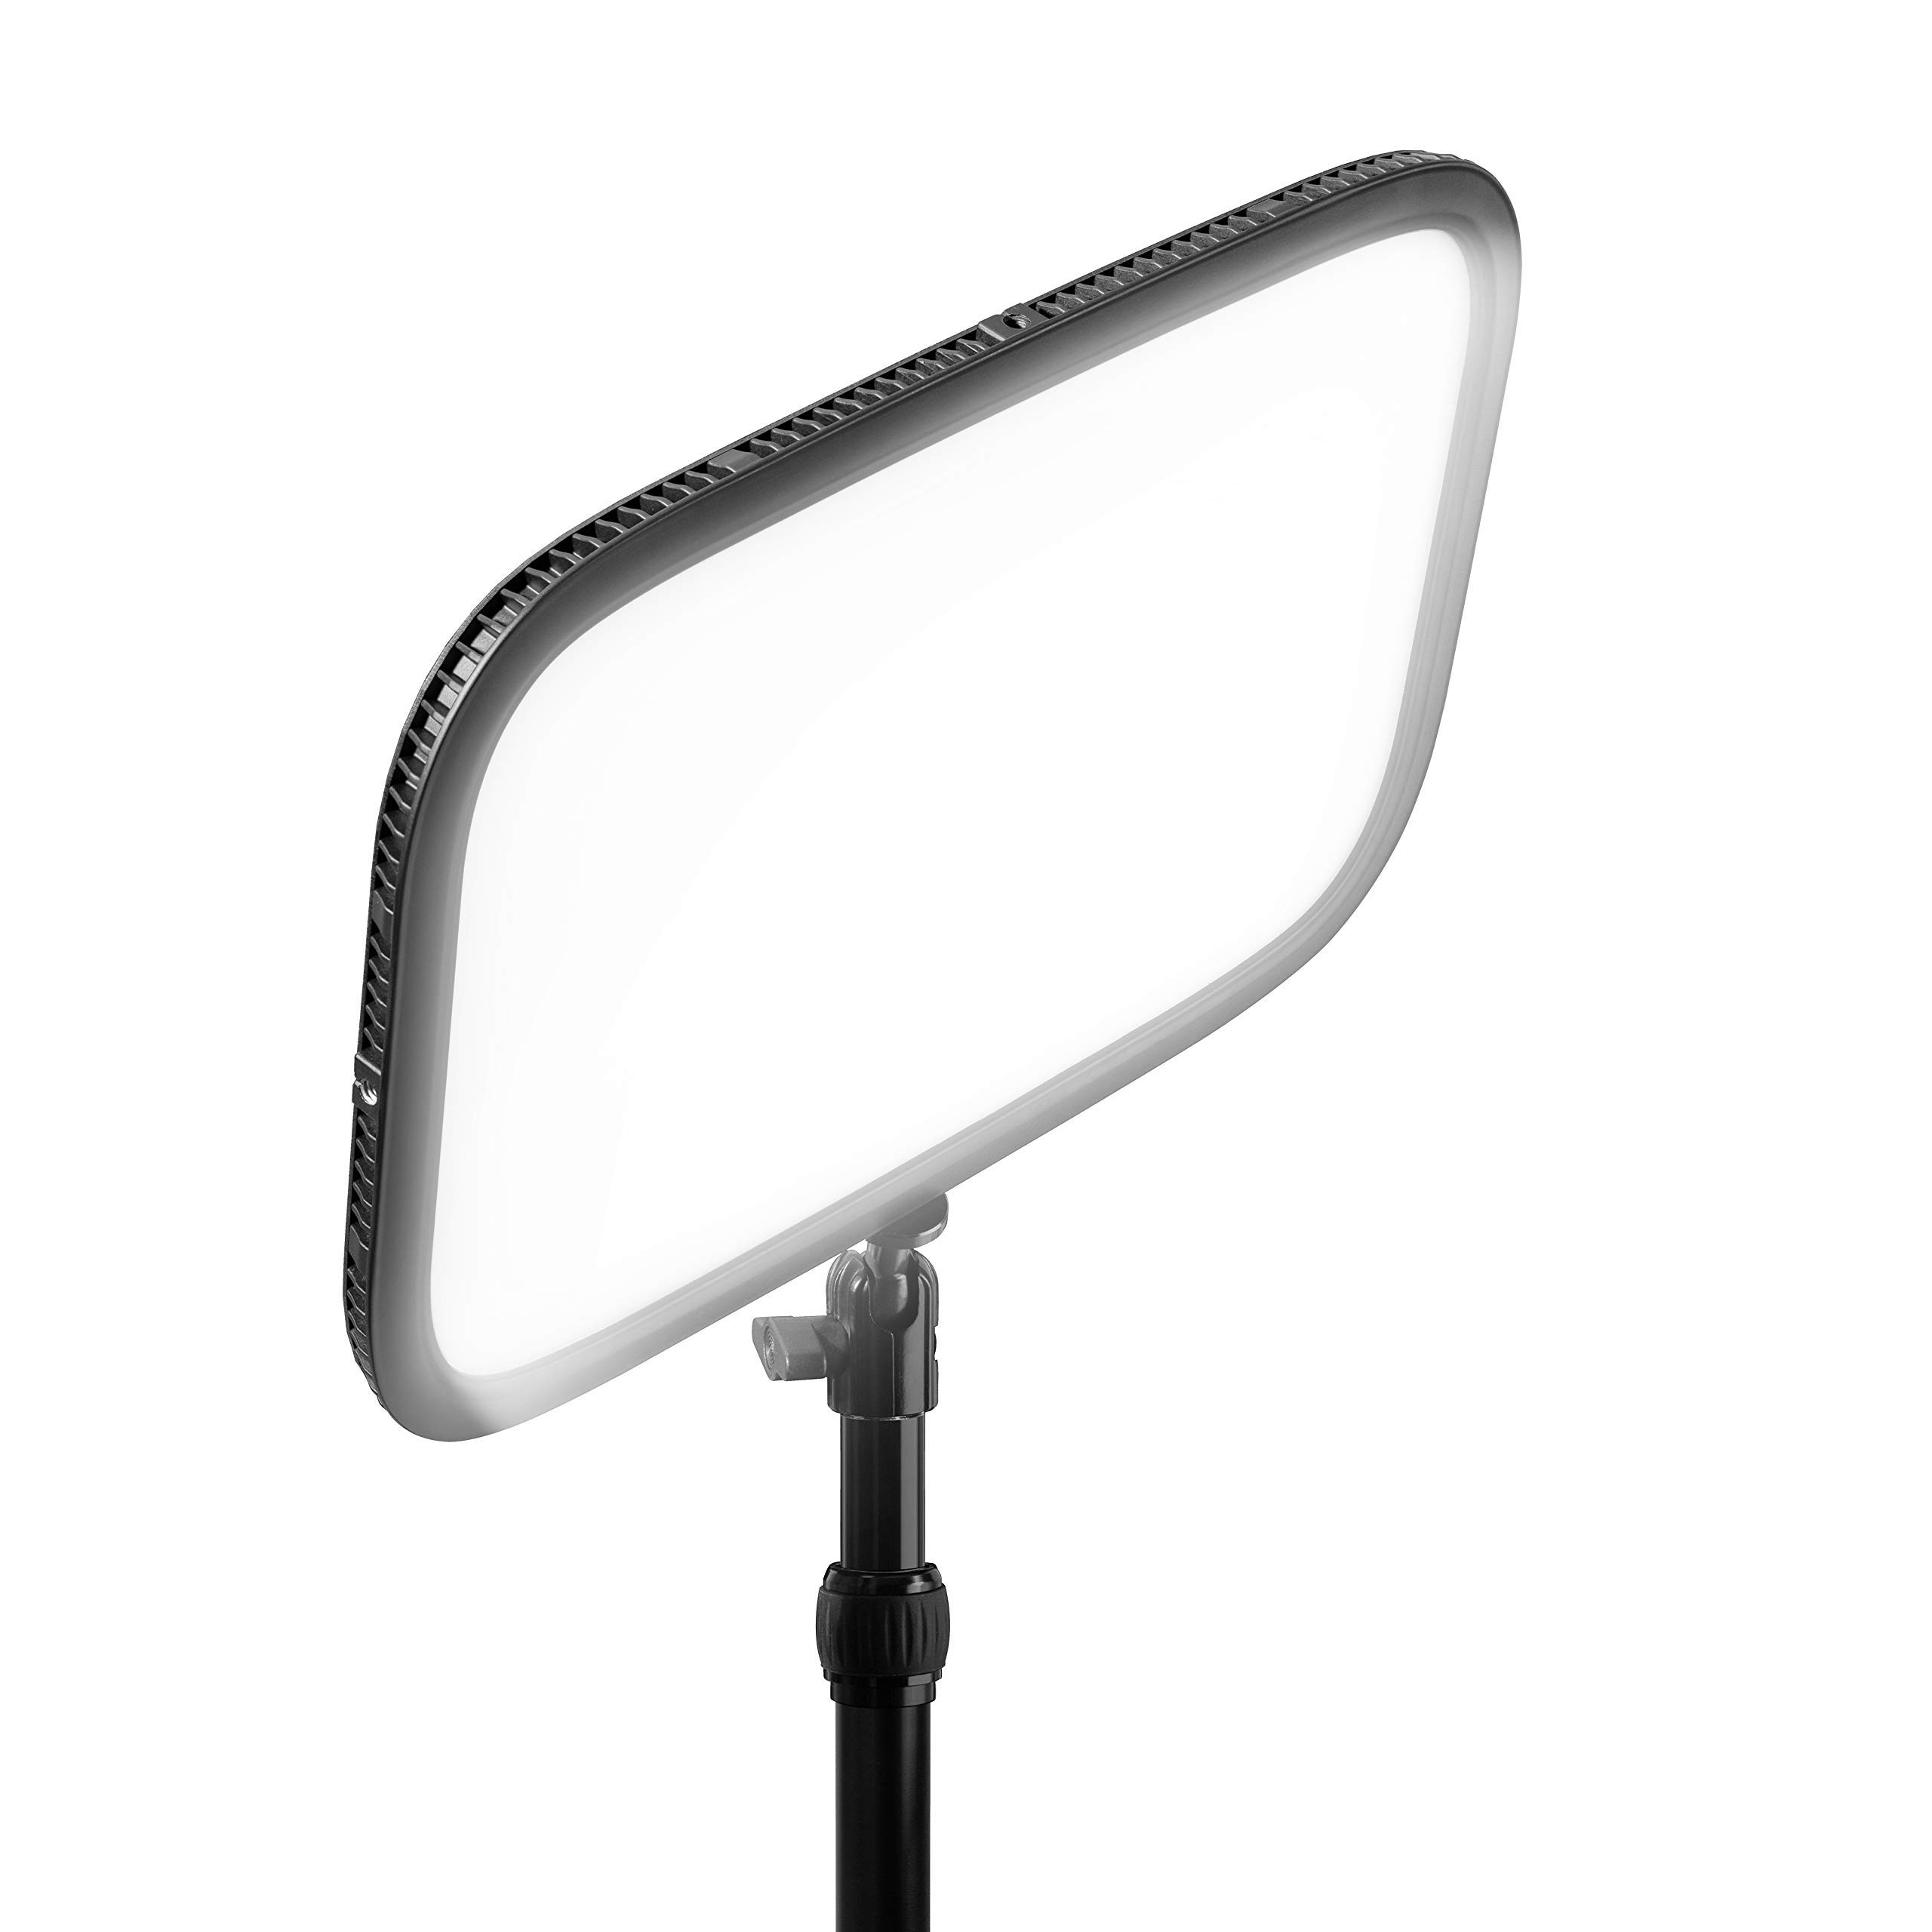 Elgato Key Light - Professional Studio LED Panel with 2500 Lumens, Color Adjustable, App-Enabled - PC and Mac (Renewed) by Corsair